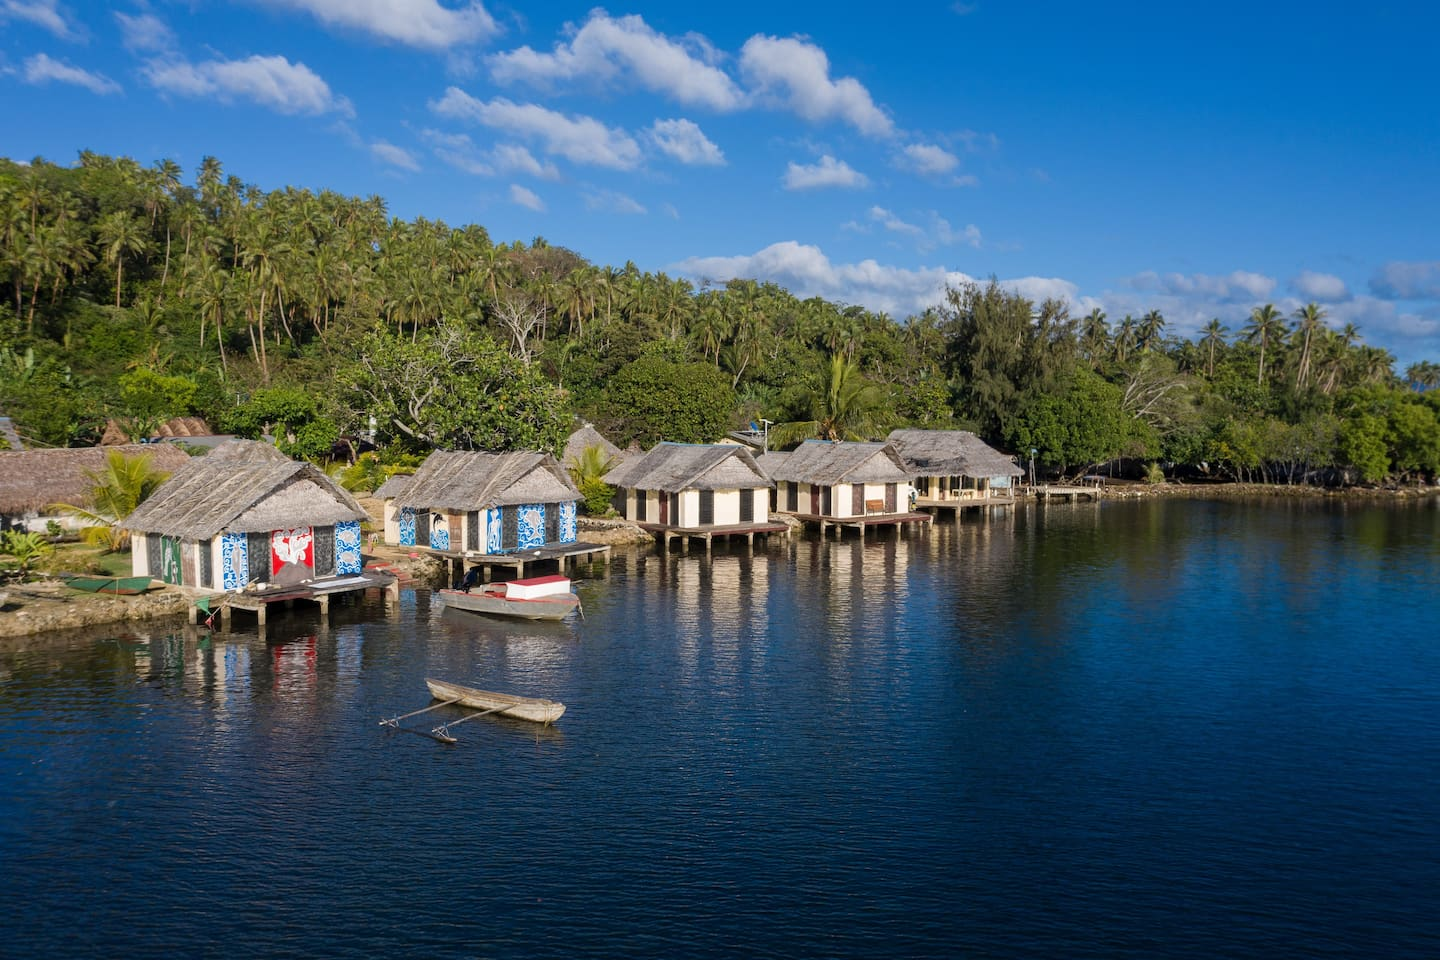 Our bungalows are right on the water. As you can see, we also have 50hp powerboat and traditional canoe for our guests.